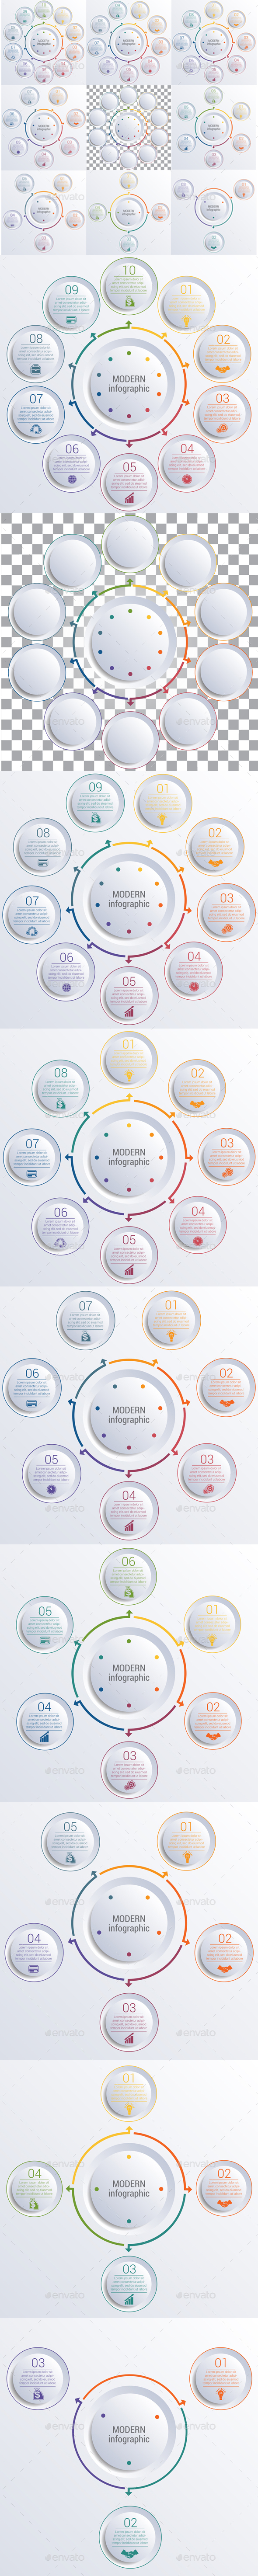 Template for infographic diagram with 3,4,5,6,7,8,9,10 options circles - Infographics